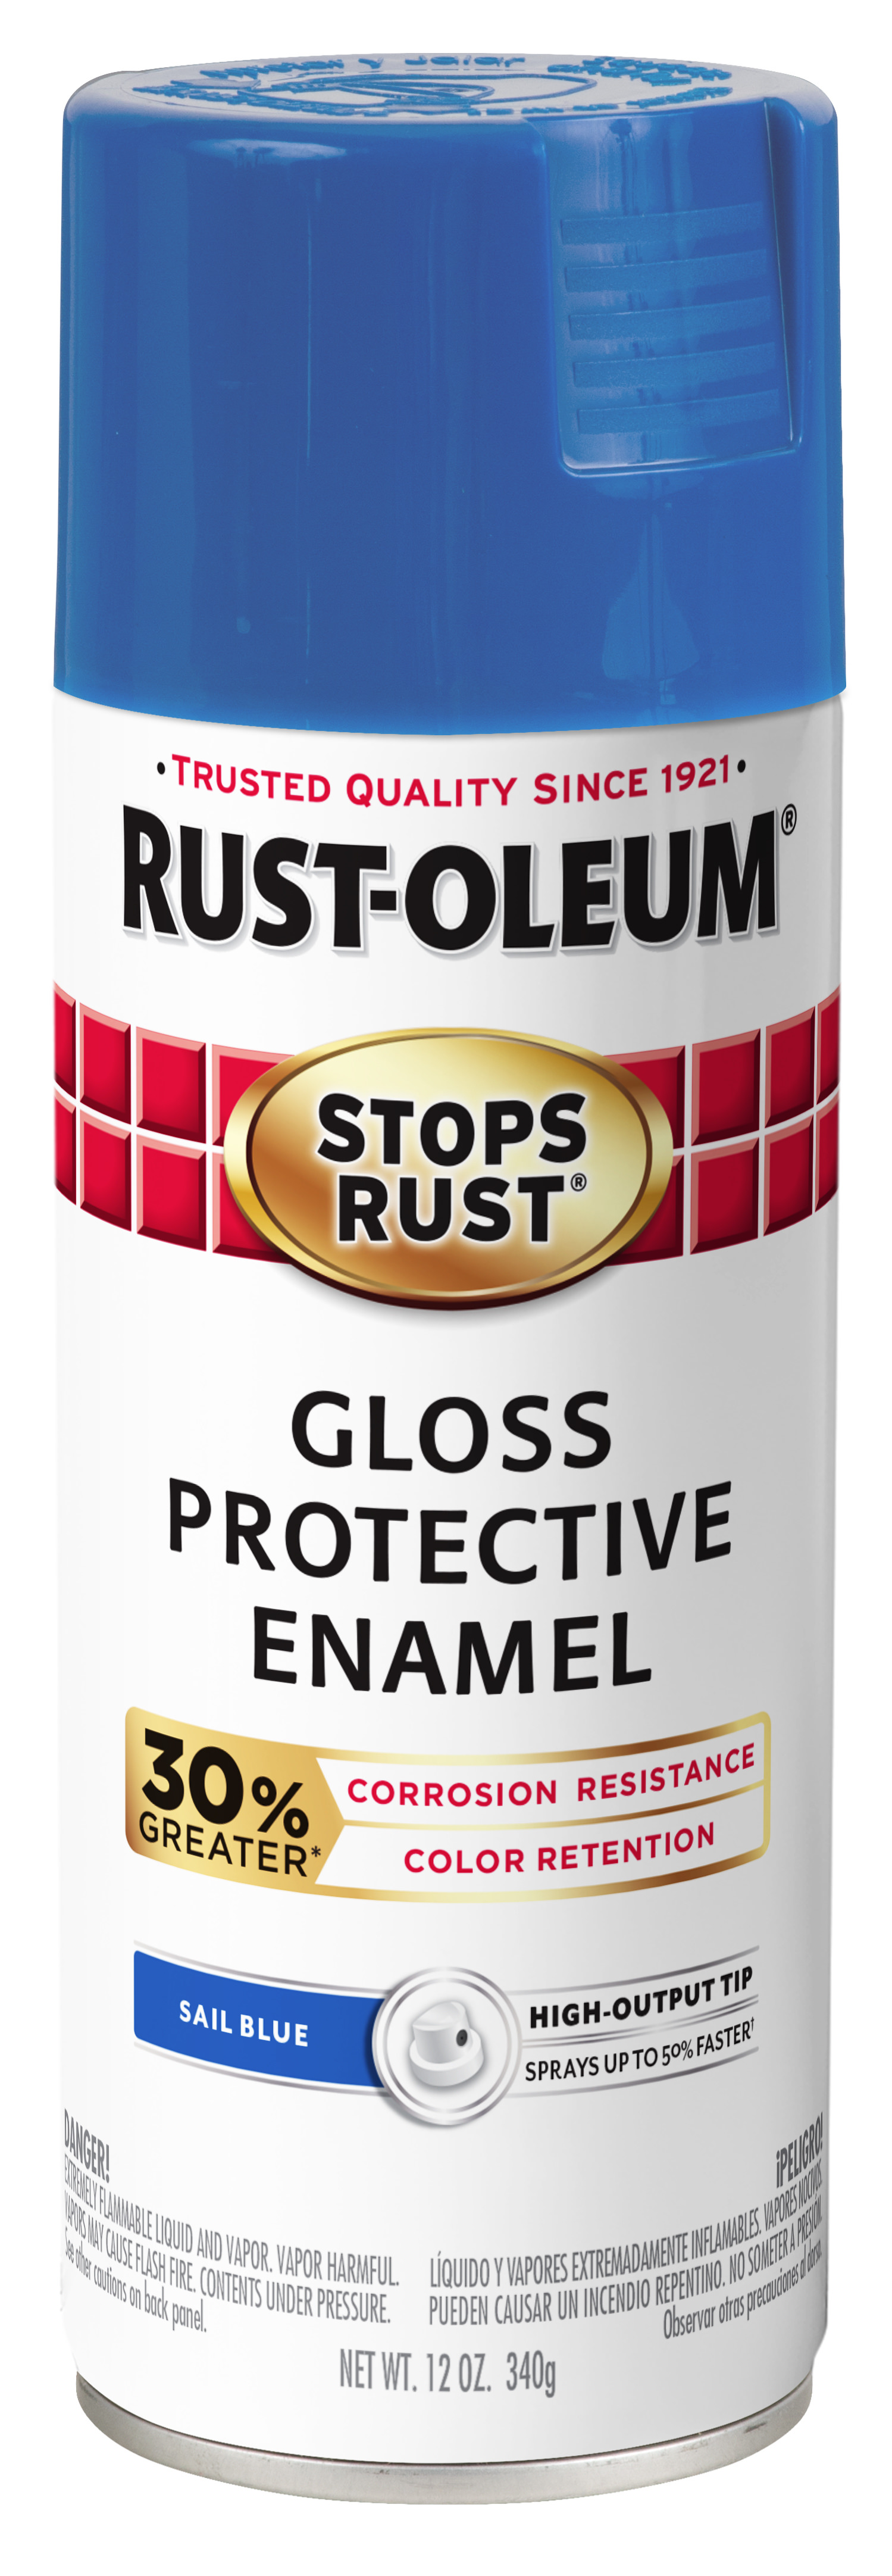 (3 Pack) Rust-Oleum Stops Rust Advanced Gloss Sail Blue Protective Enamel Spray Paint, 12 oz